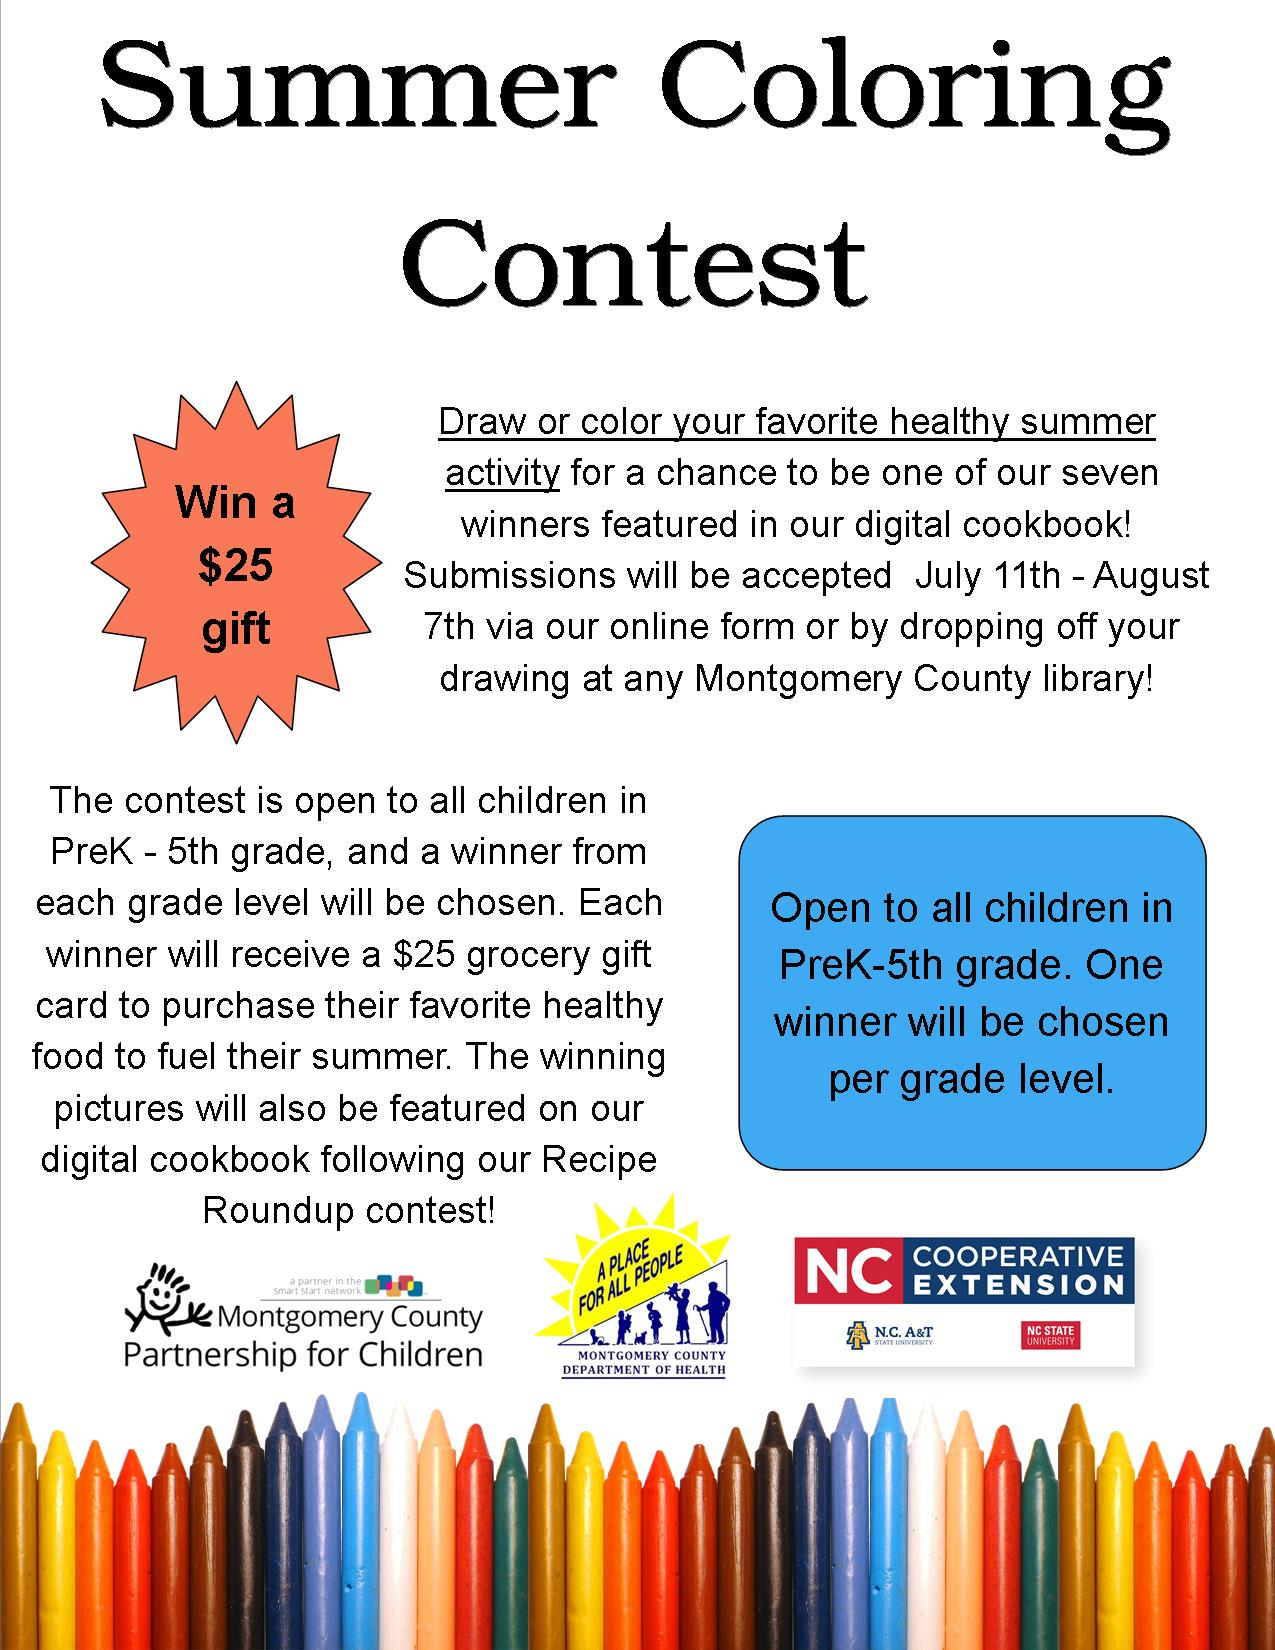 Summer Coloring Contest flyer